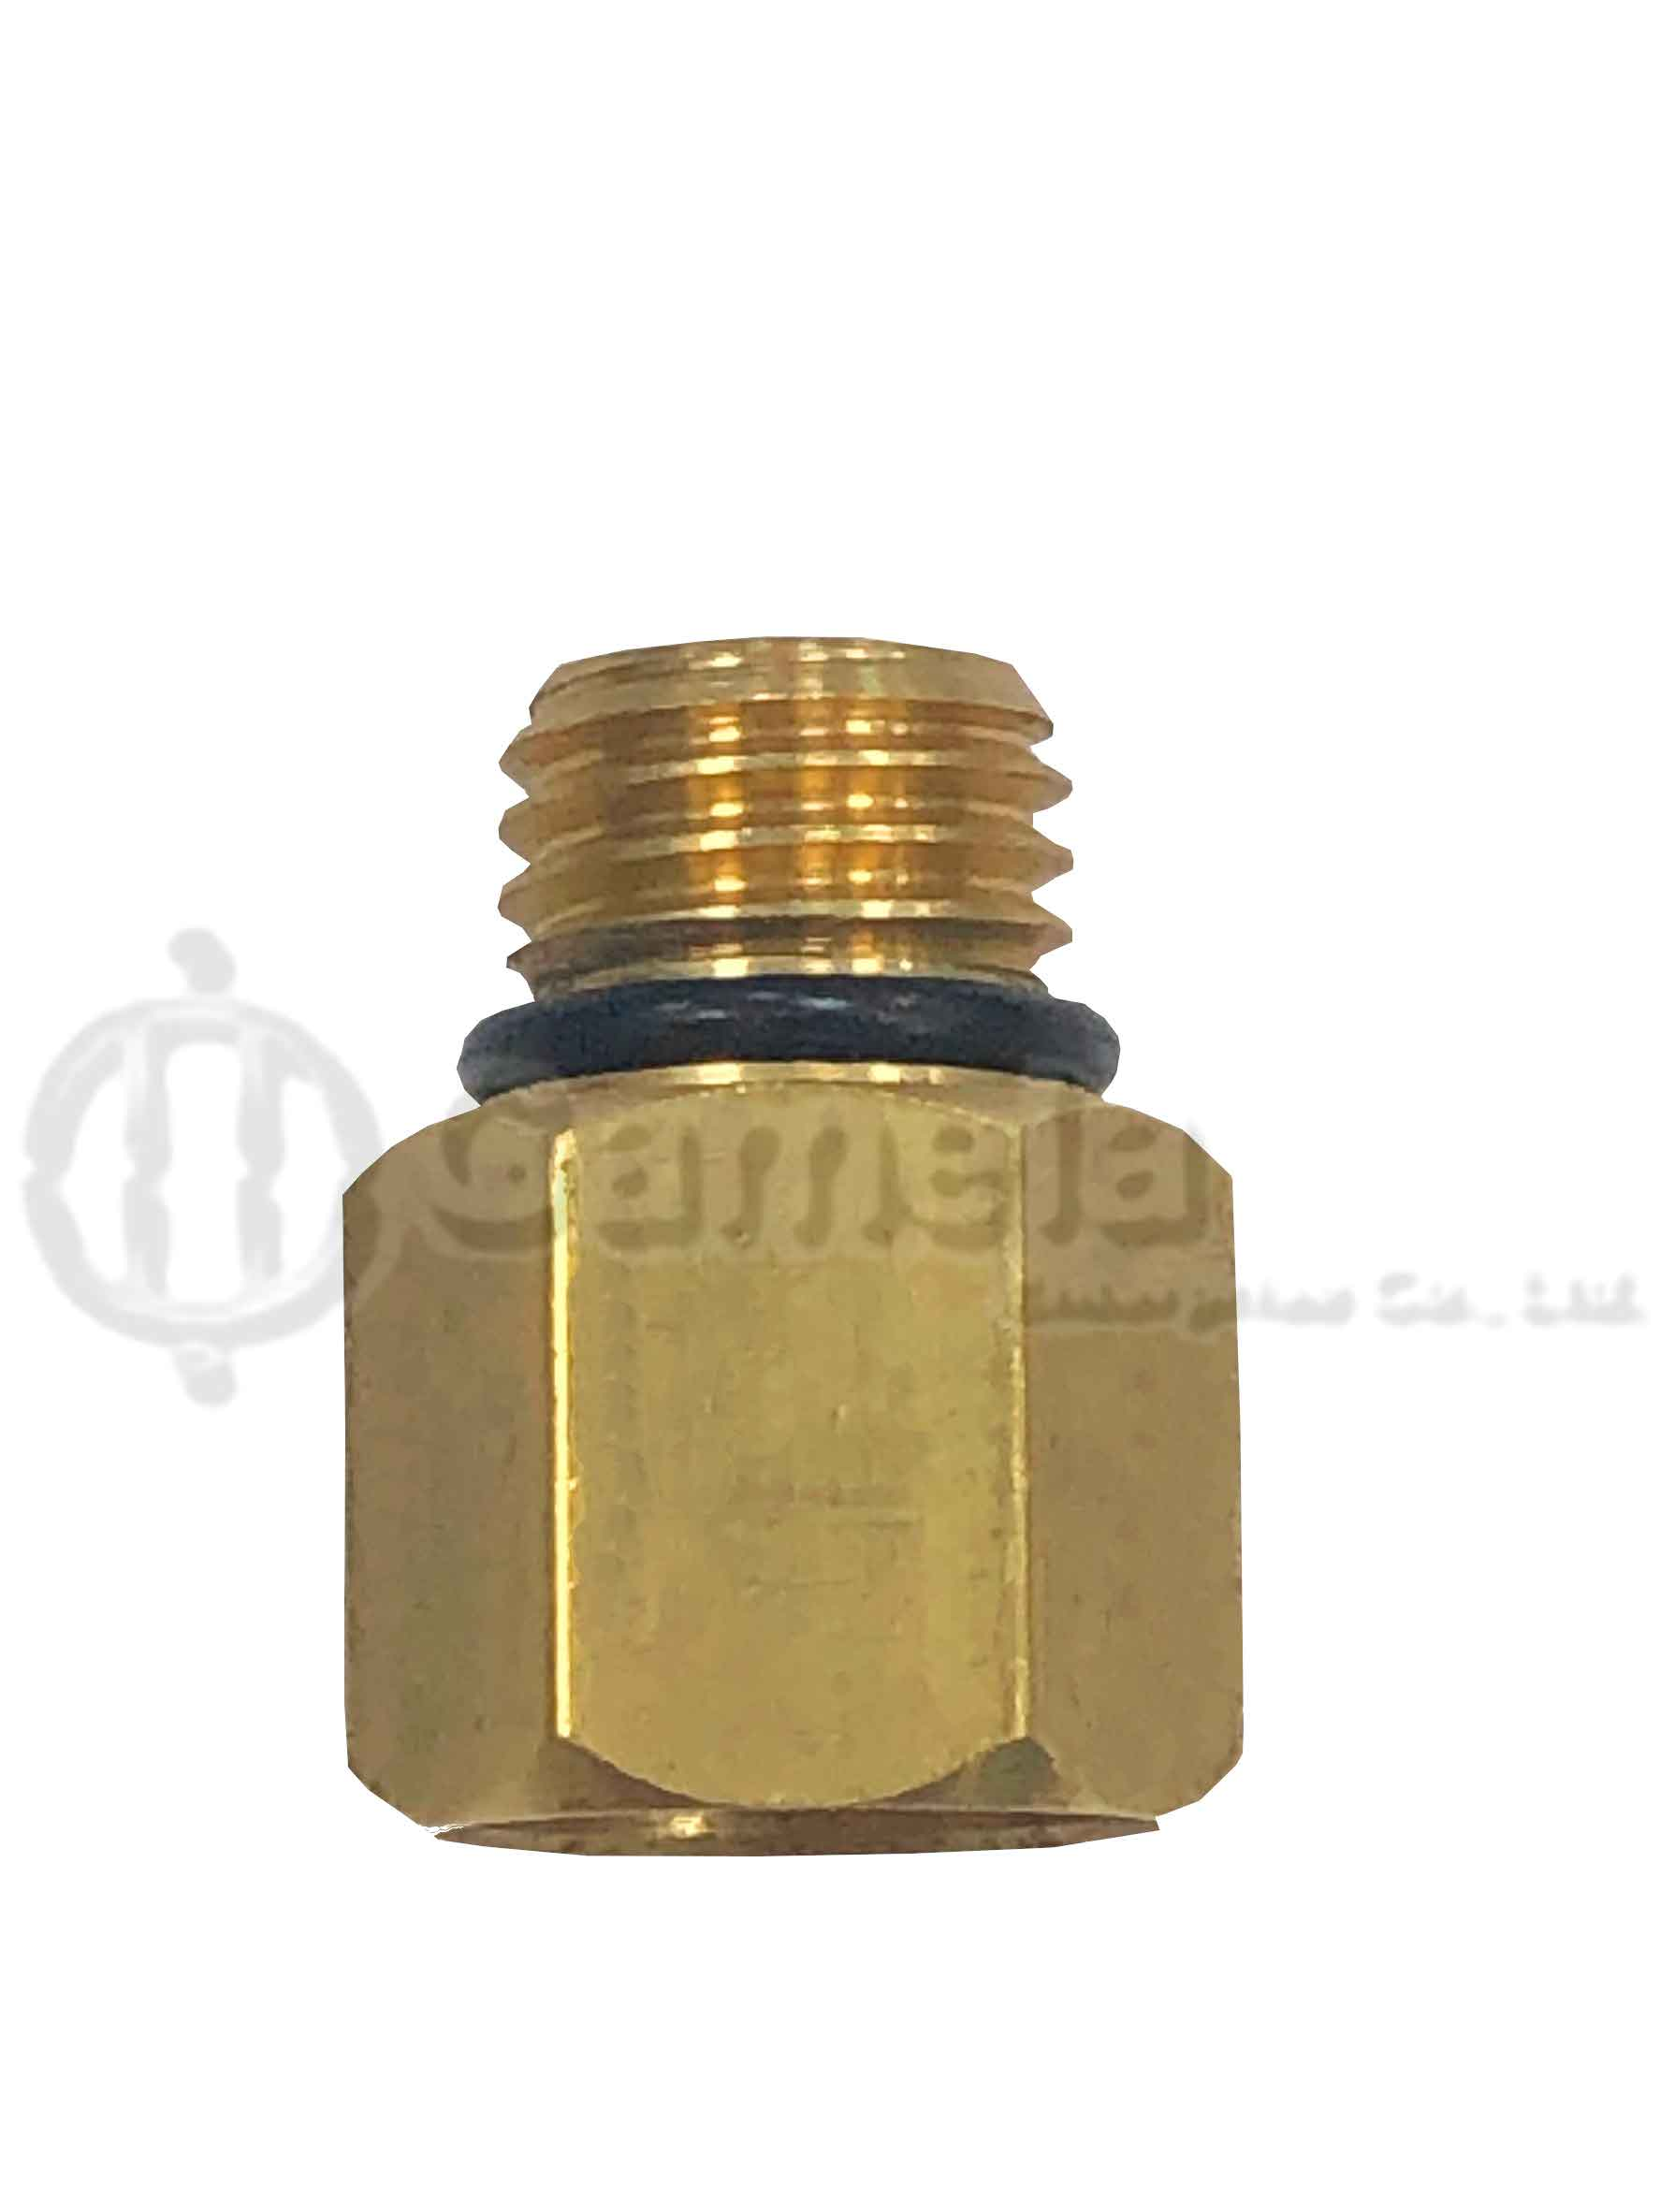 22619 - Adapter-M12-1-5-Male-x-M14-1-5-Female